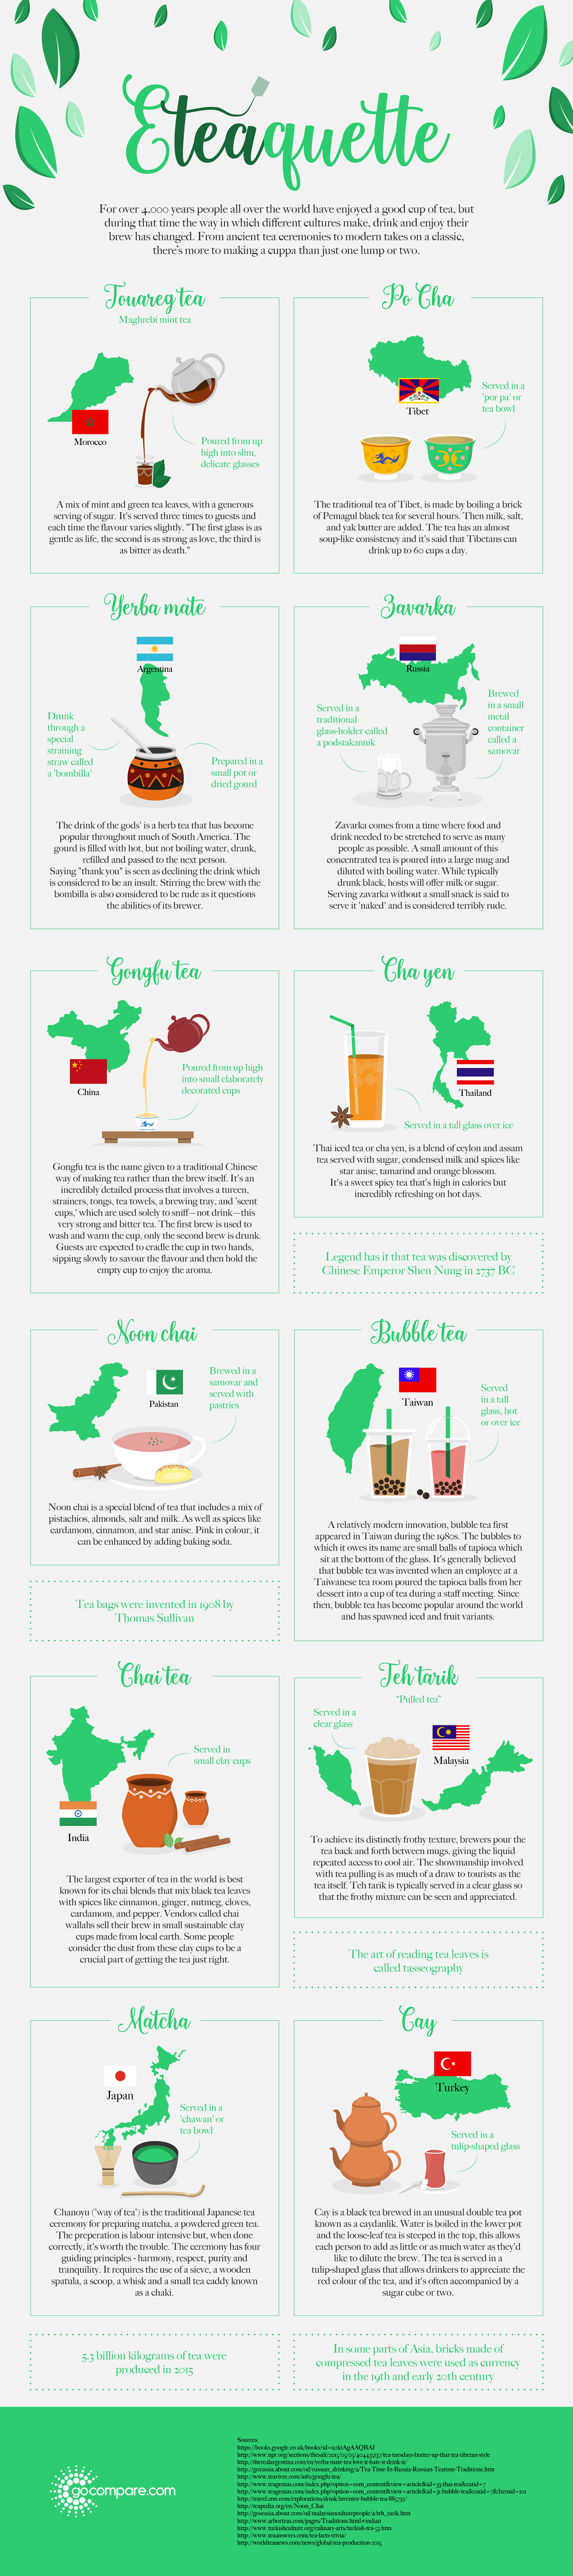 How tea is served around the world